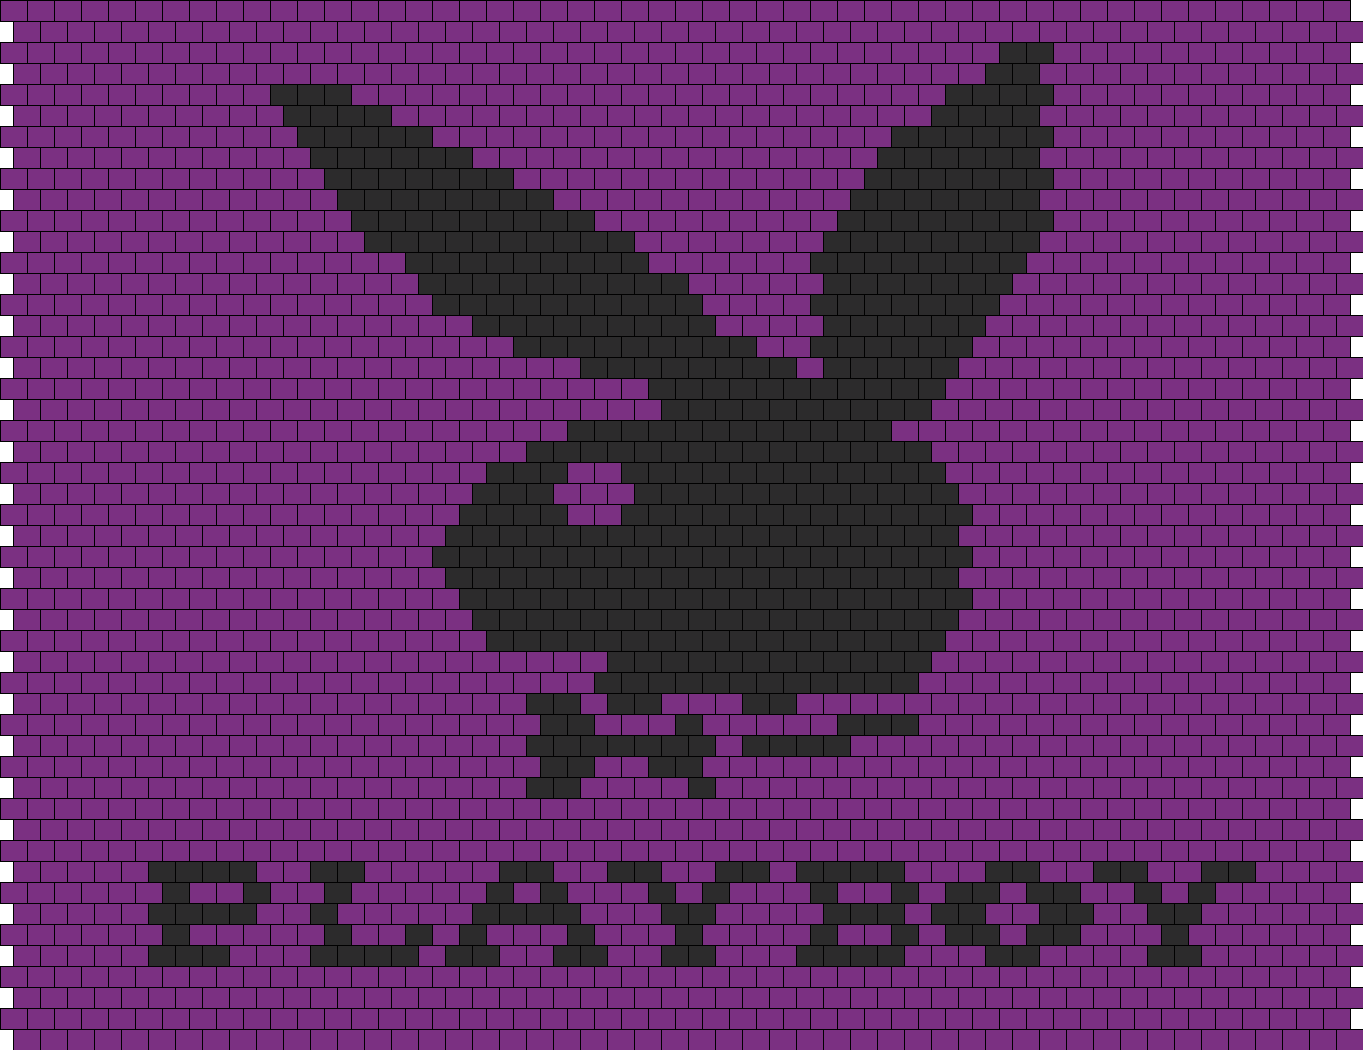 Purple Playboy Bunny Bag